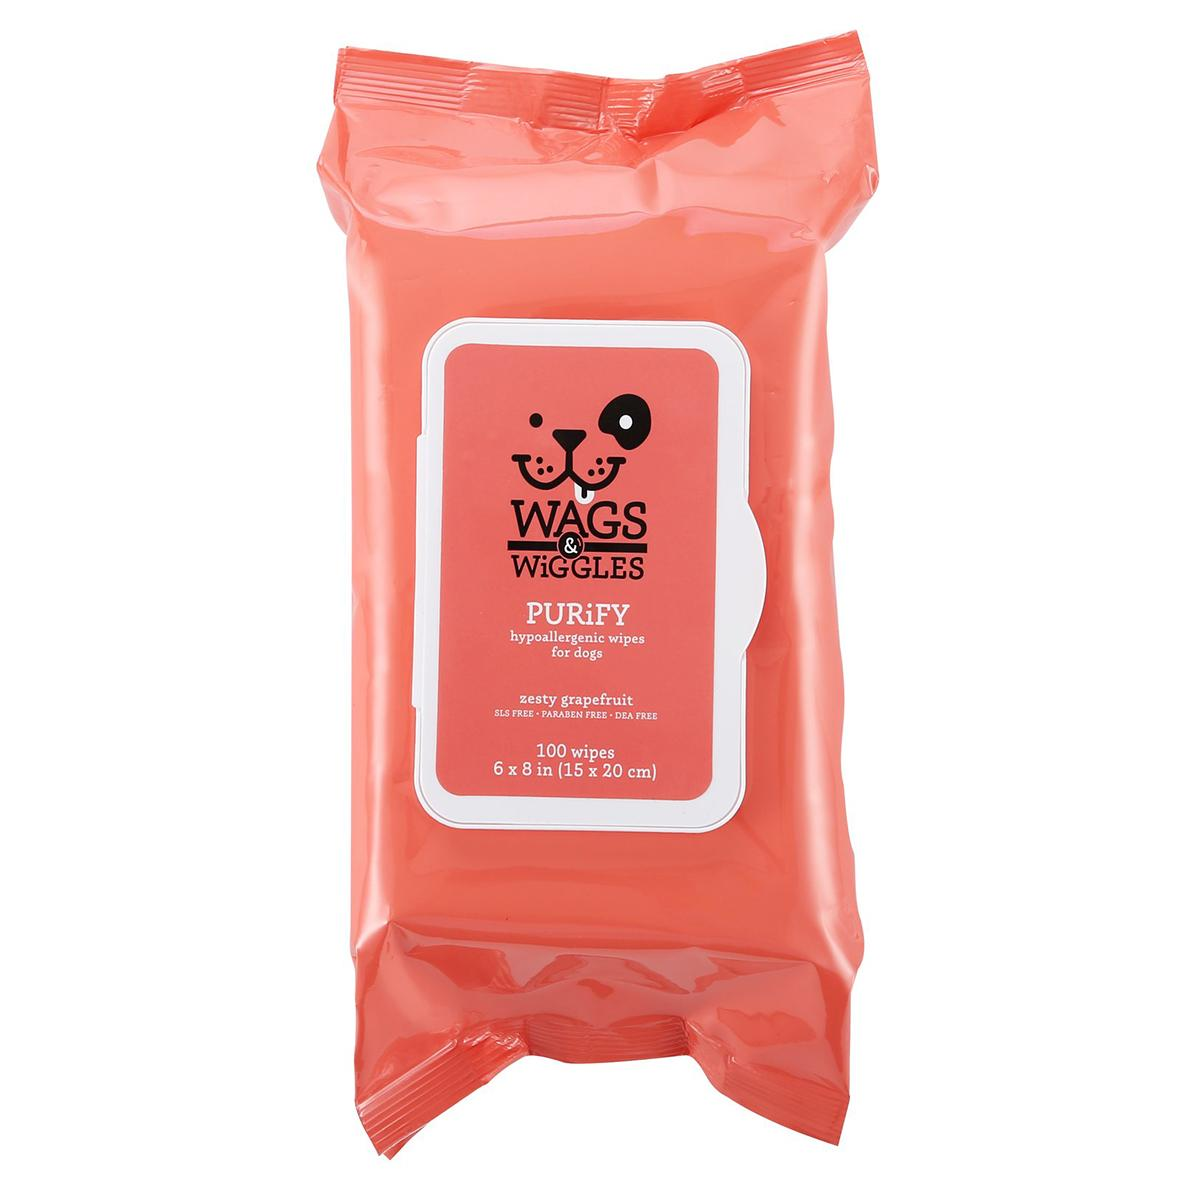 Wags & Wiggles Purify Hypoallergenic Wipes - Zesty Grapefruit